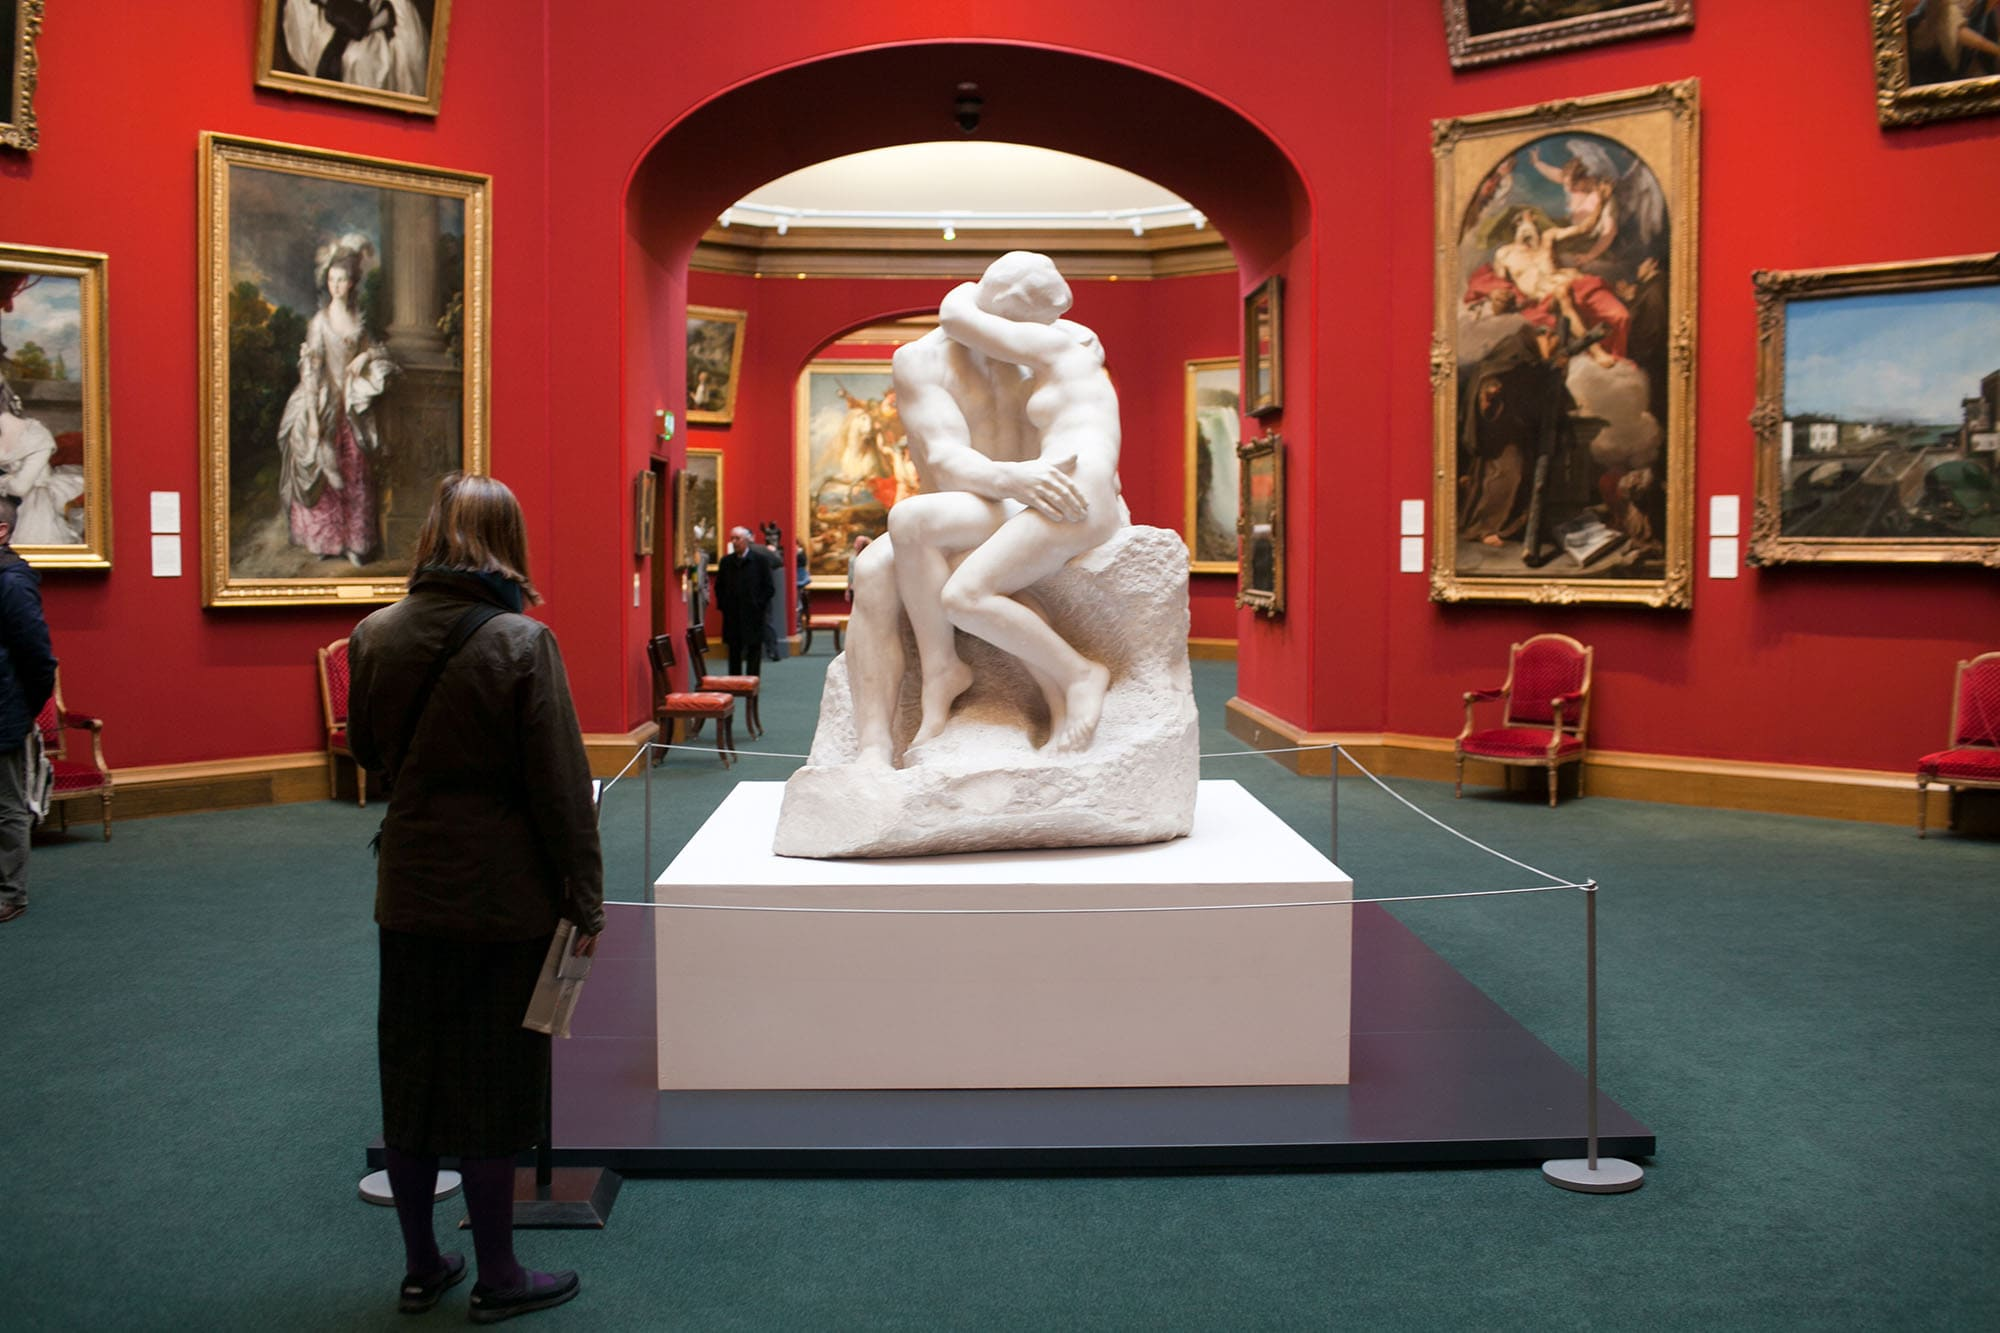 Rodin's The Kiss at the Scottish National Gallery in Edinburgh, Scotland